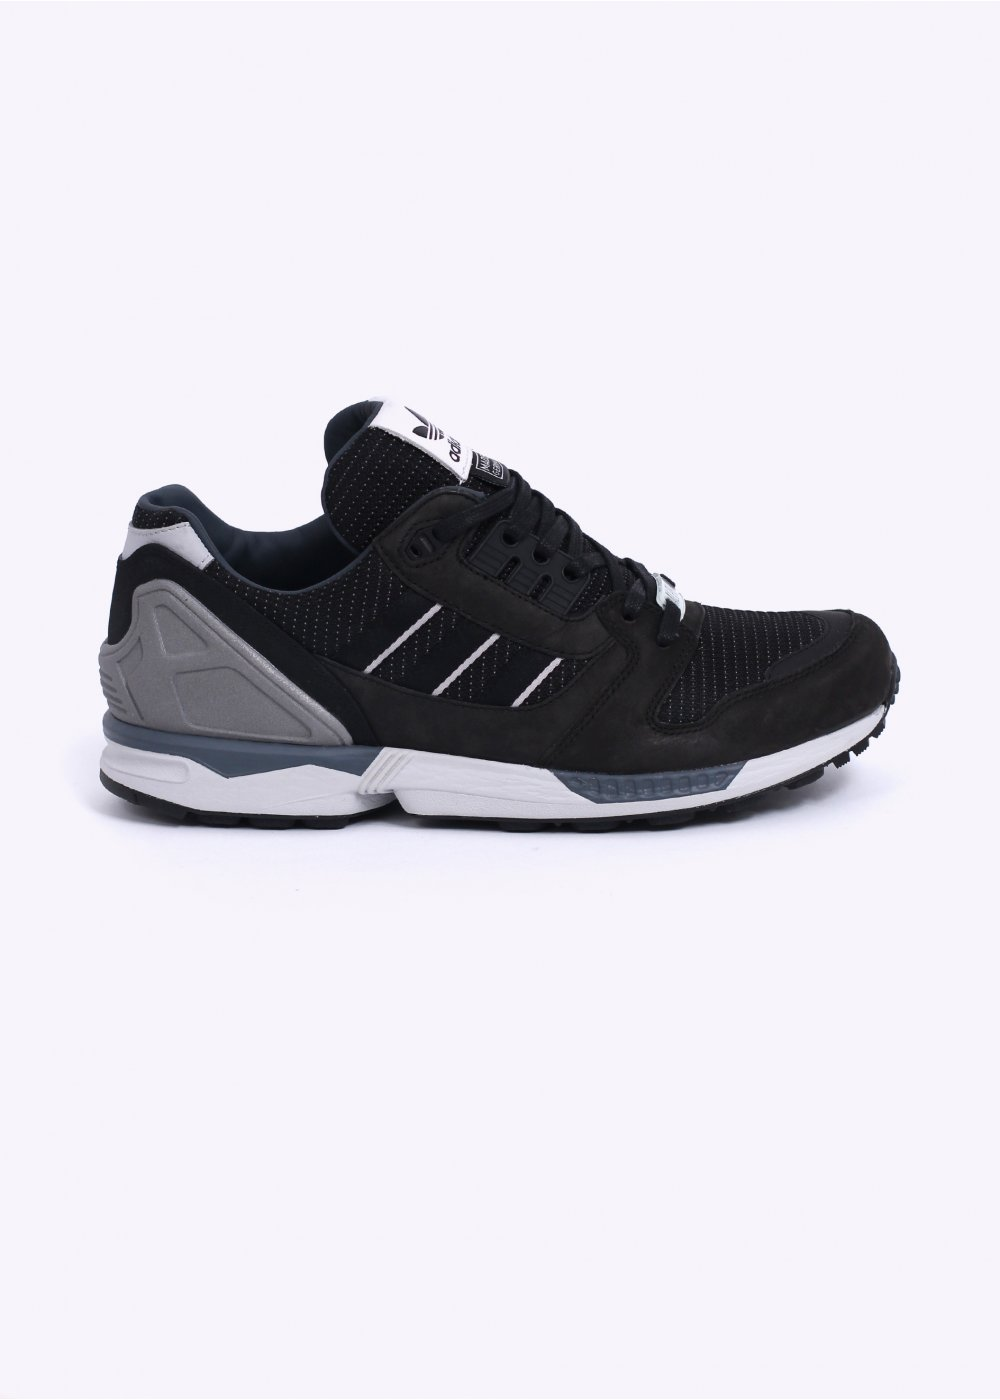 reputable site 6b95d 8062a Fall of the Wall - Alpha  039  ZX 8000 Trainers - Black   Solid